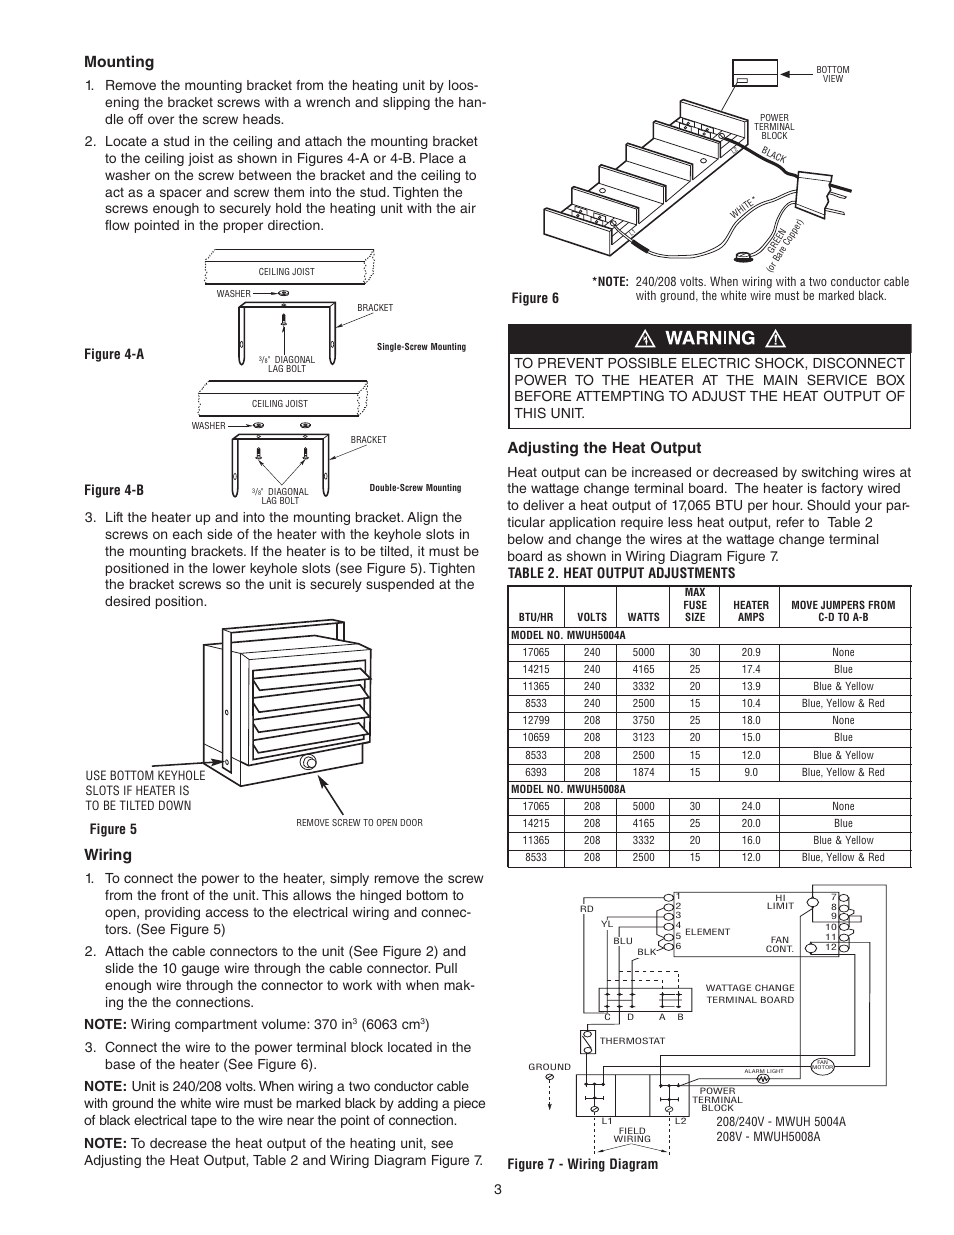 modine heaters wiring diagram for pd modine unit heater drawings elsavadorla